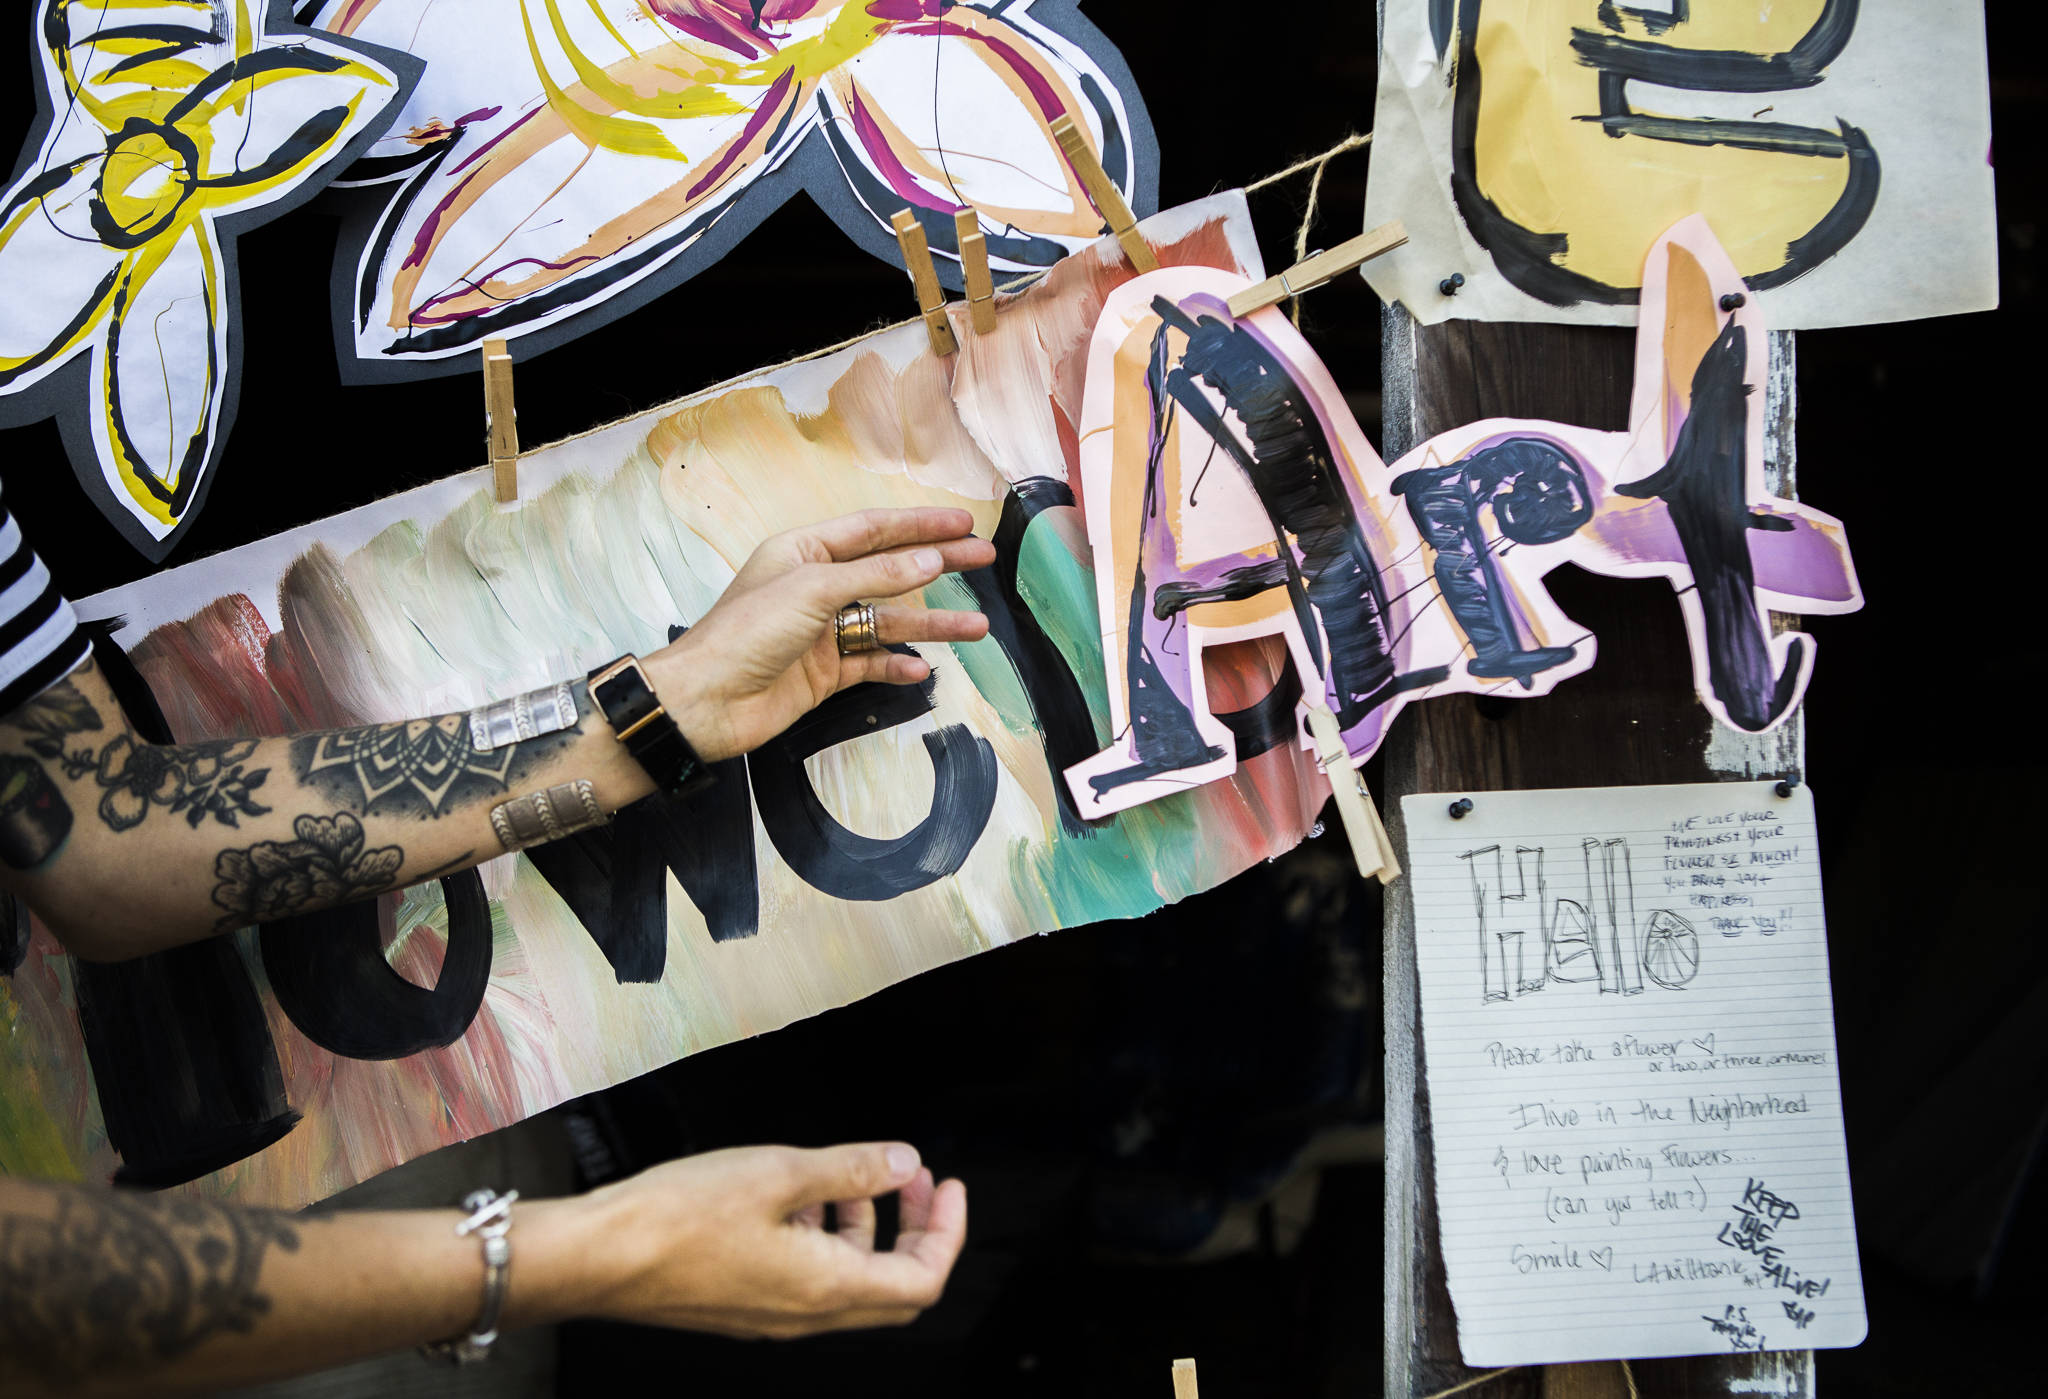 Passersby have posted notes of thanks on Lennon Wiltbank's art project in Bothell. (Olivia Vanni / The Herald)